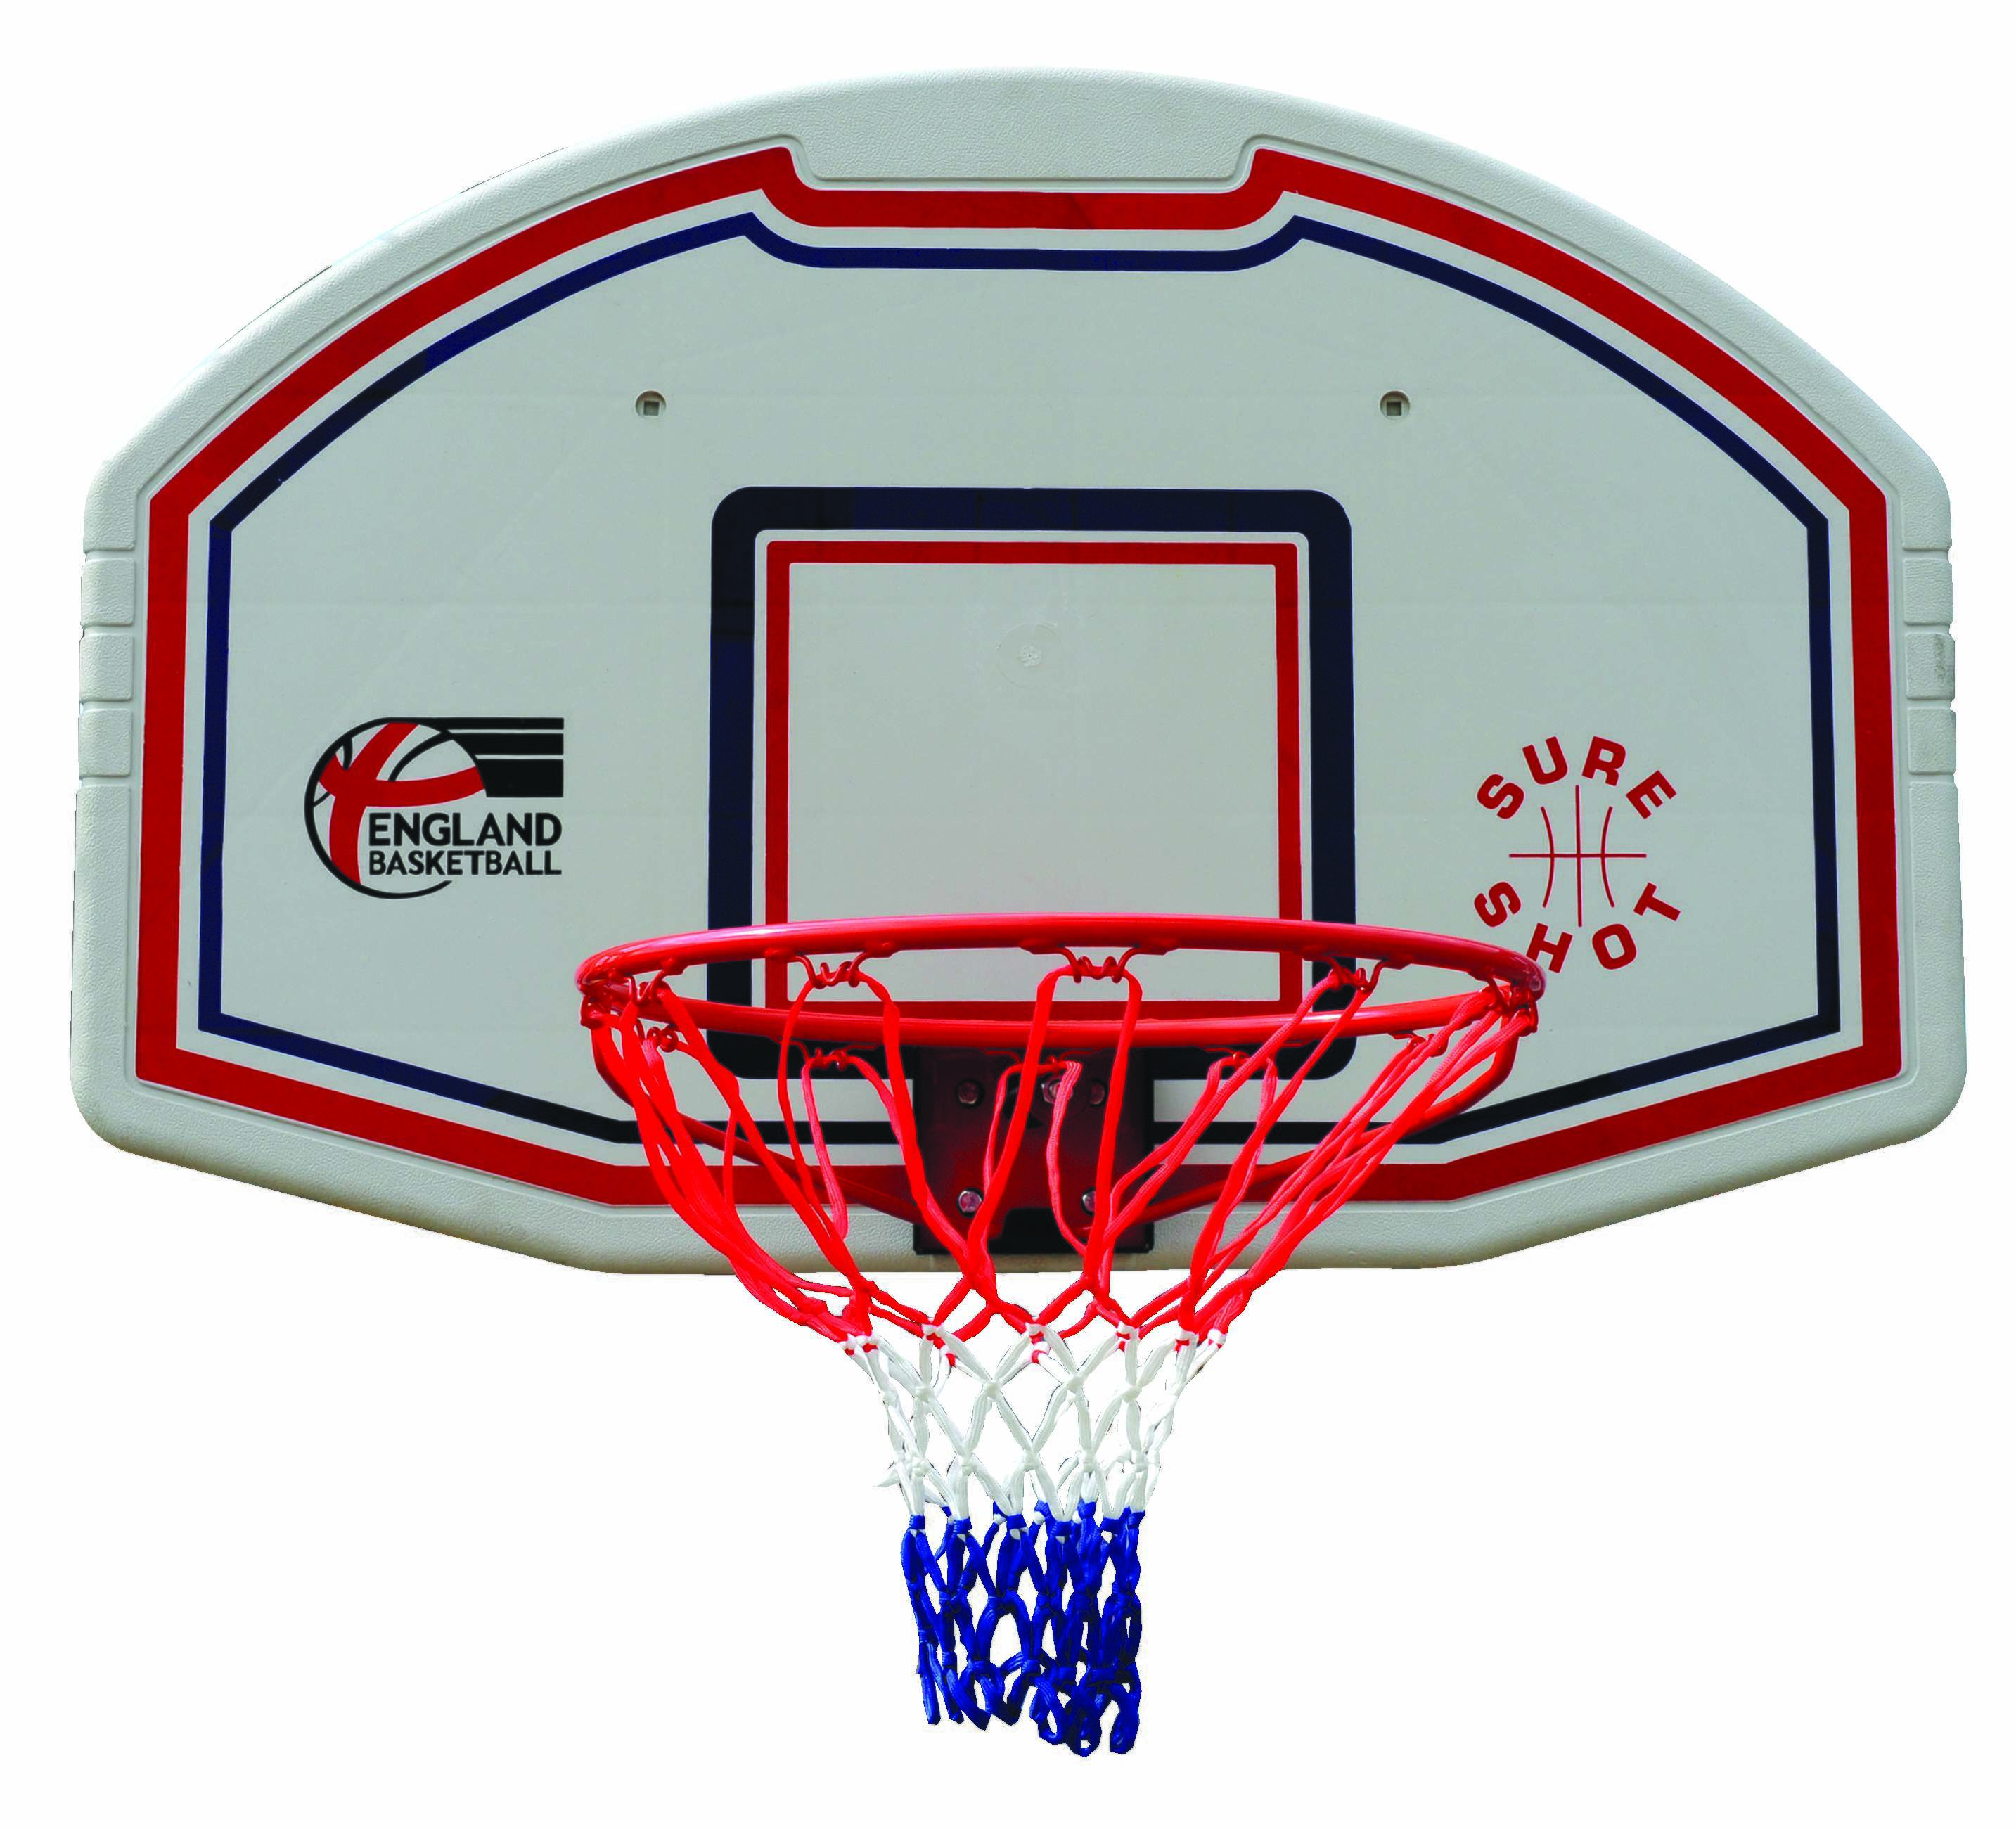 Mountable Basketball Backboard & Flexible Hoop